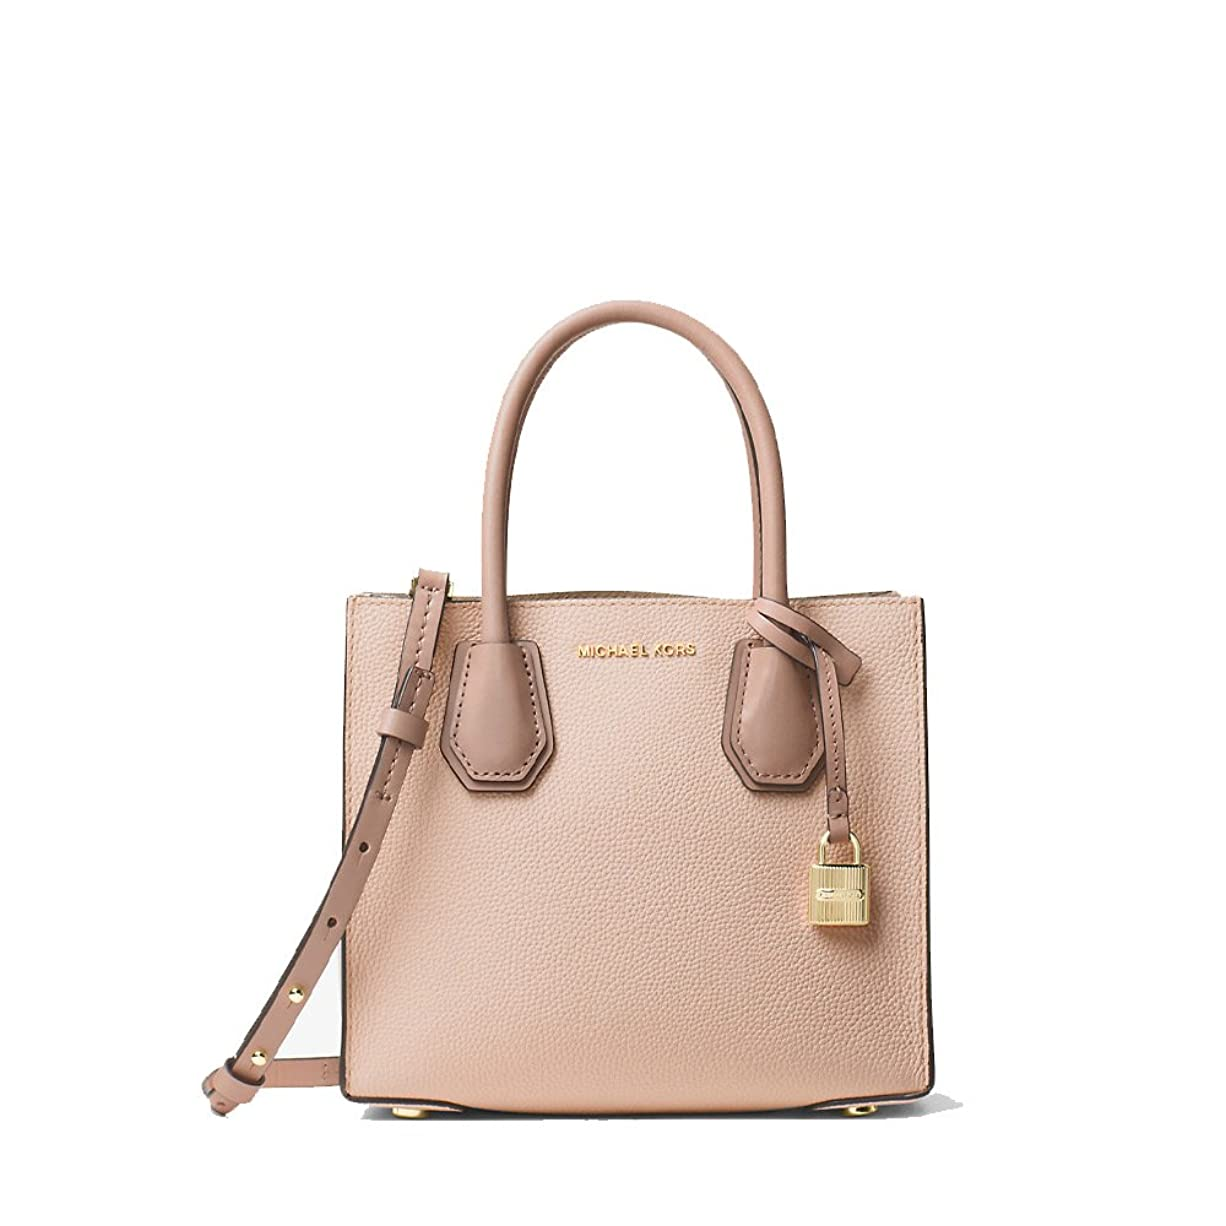 蒸防衛雄弁MICHAEL KORS MERCER MEDIUM MESSENGER TRY-TONE SOFT PINK(ピンク) [並行輸入品]